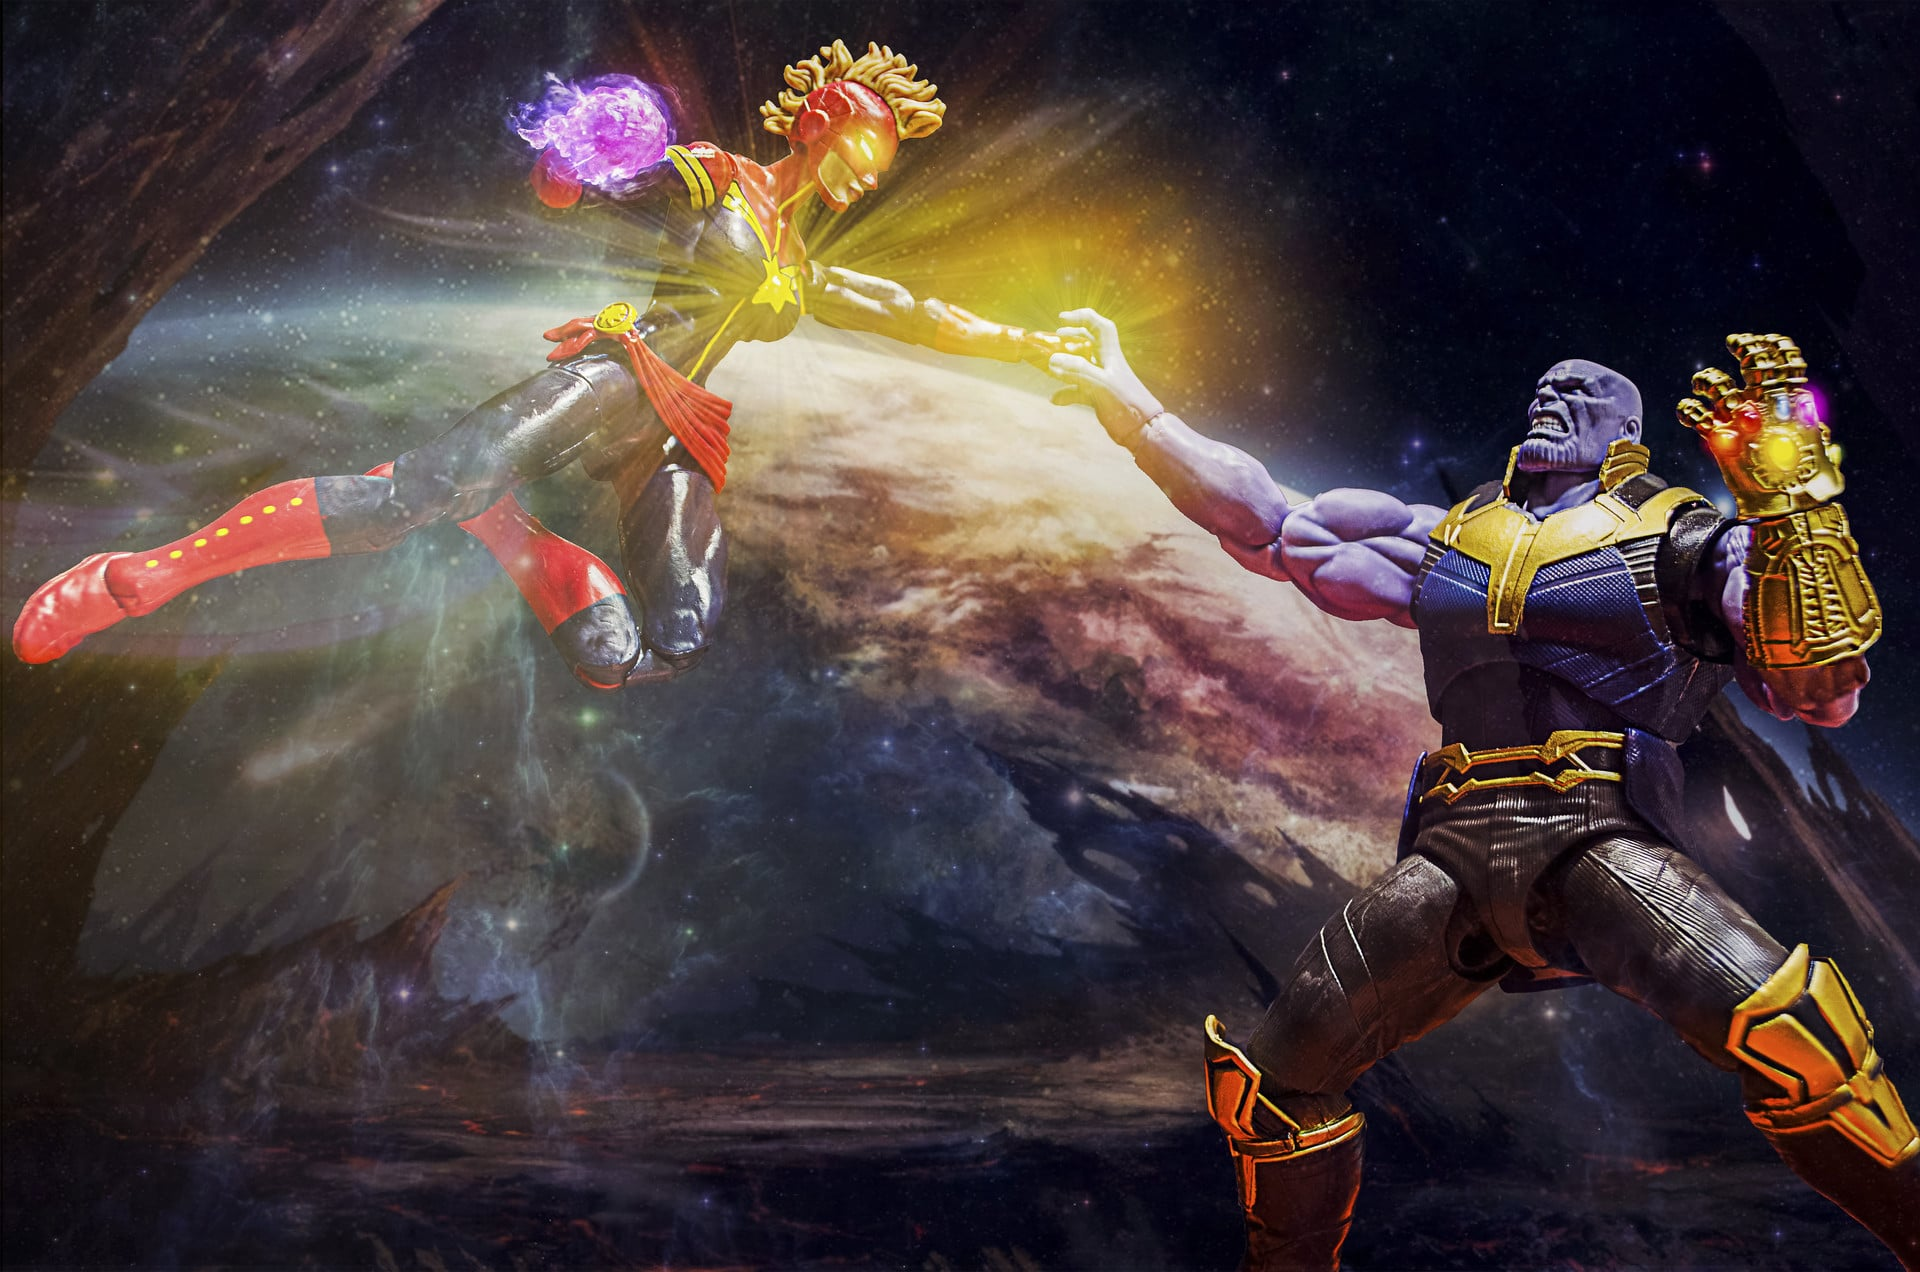 Thanos proved himself to be the most powerful Marvel Cinematic Universe's character, Better than the Captain Marvel.